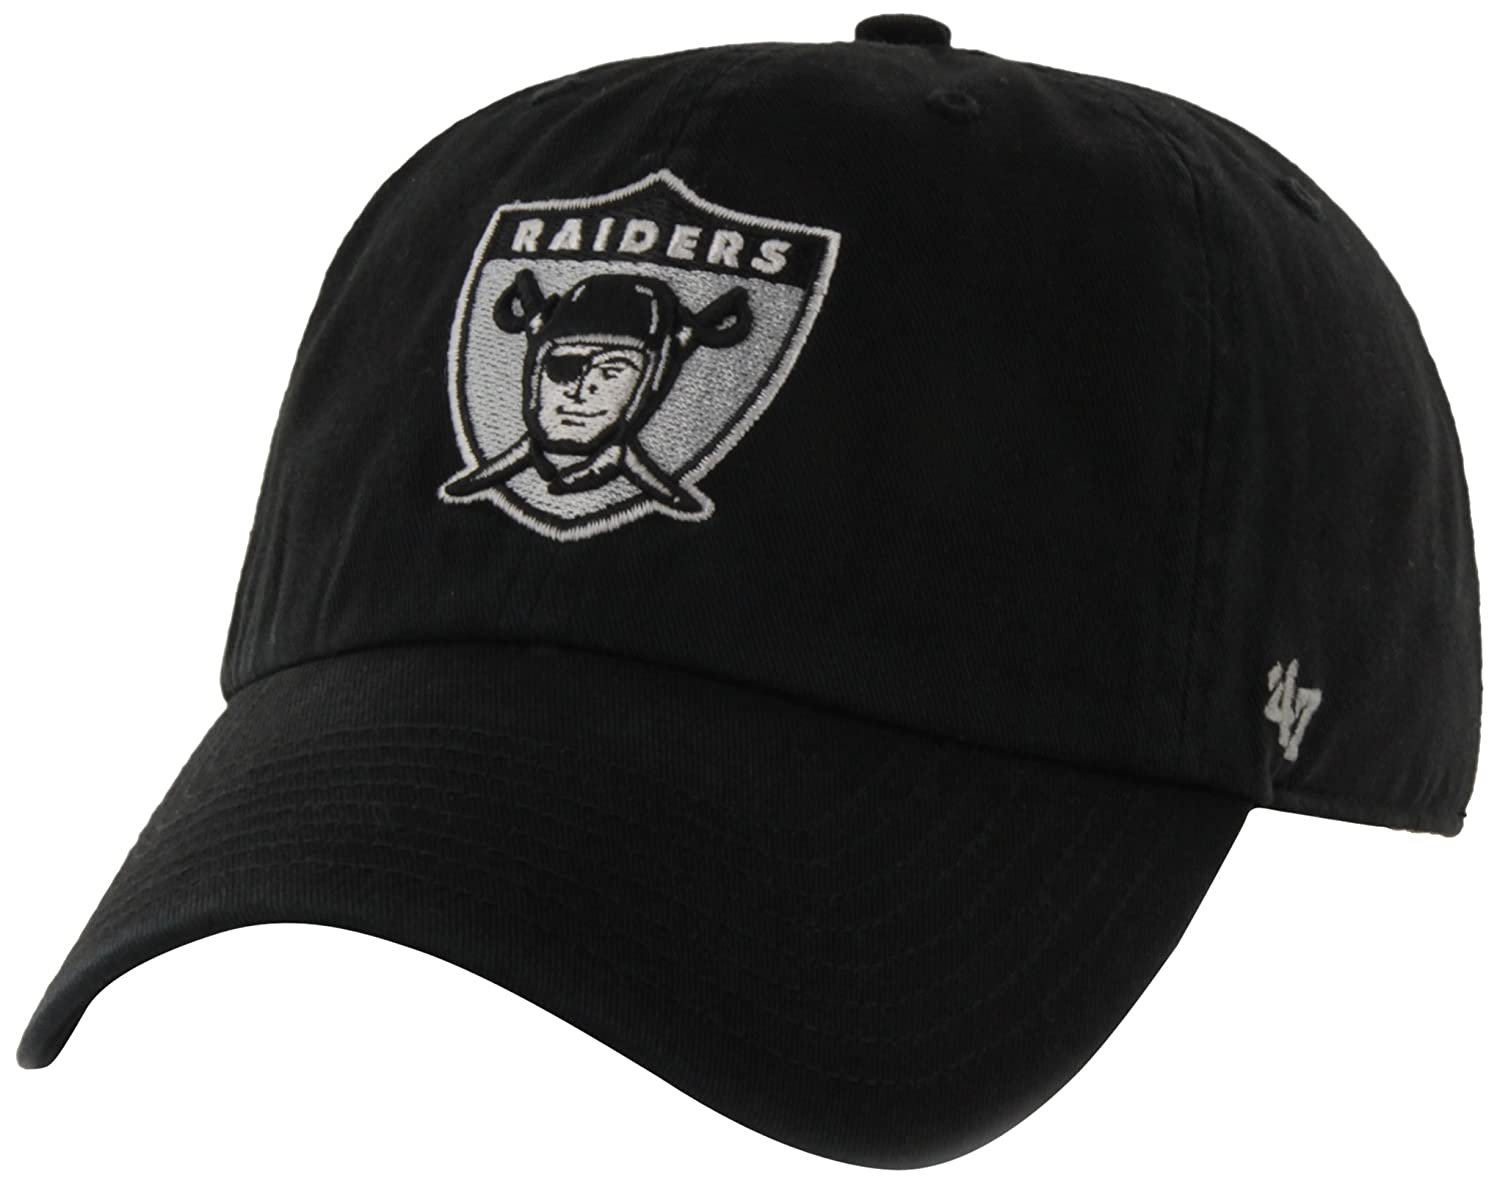 buy online e09a1 76c35 Amazon.com   NFL Oakland Raiders  47 Brand Clean Up Adjustable Hat (1963  Logo), Black, One Size   Sports   Outdoors